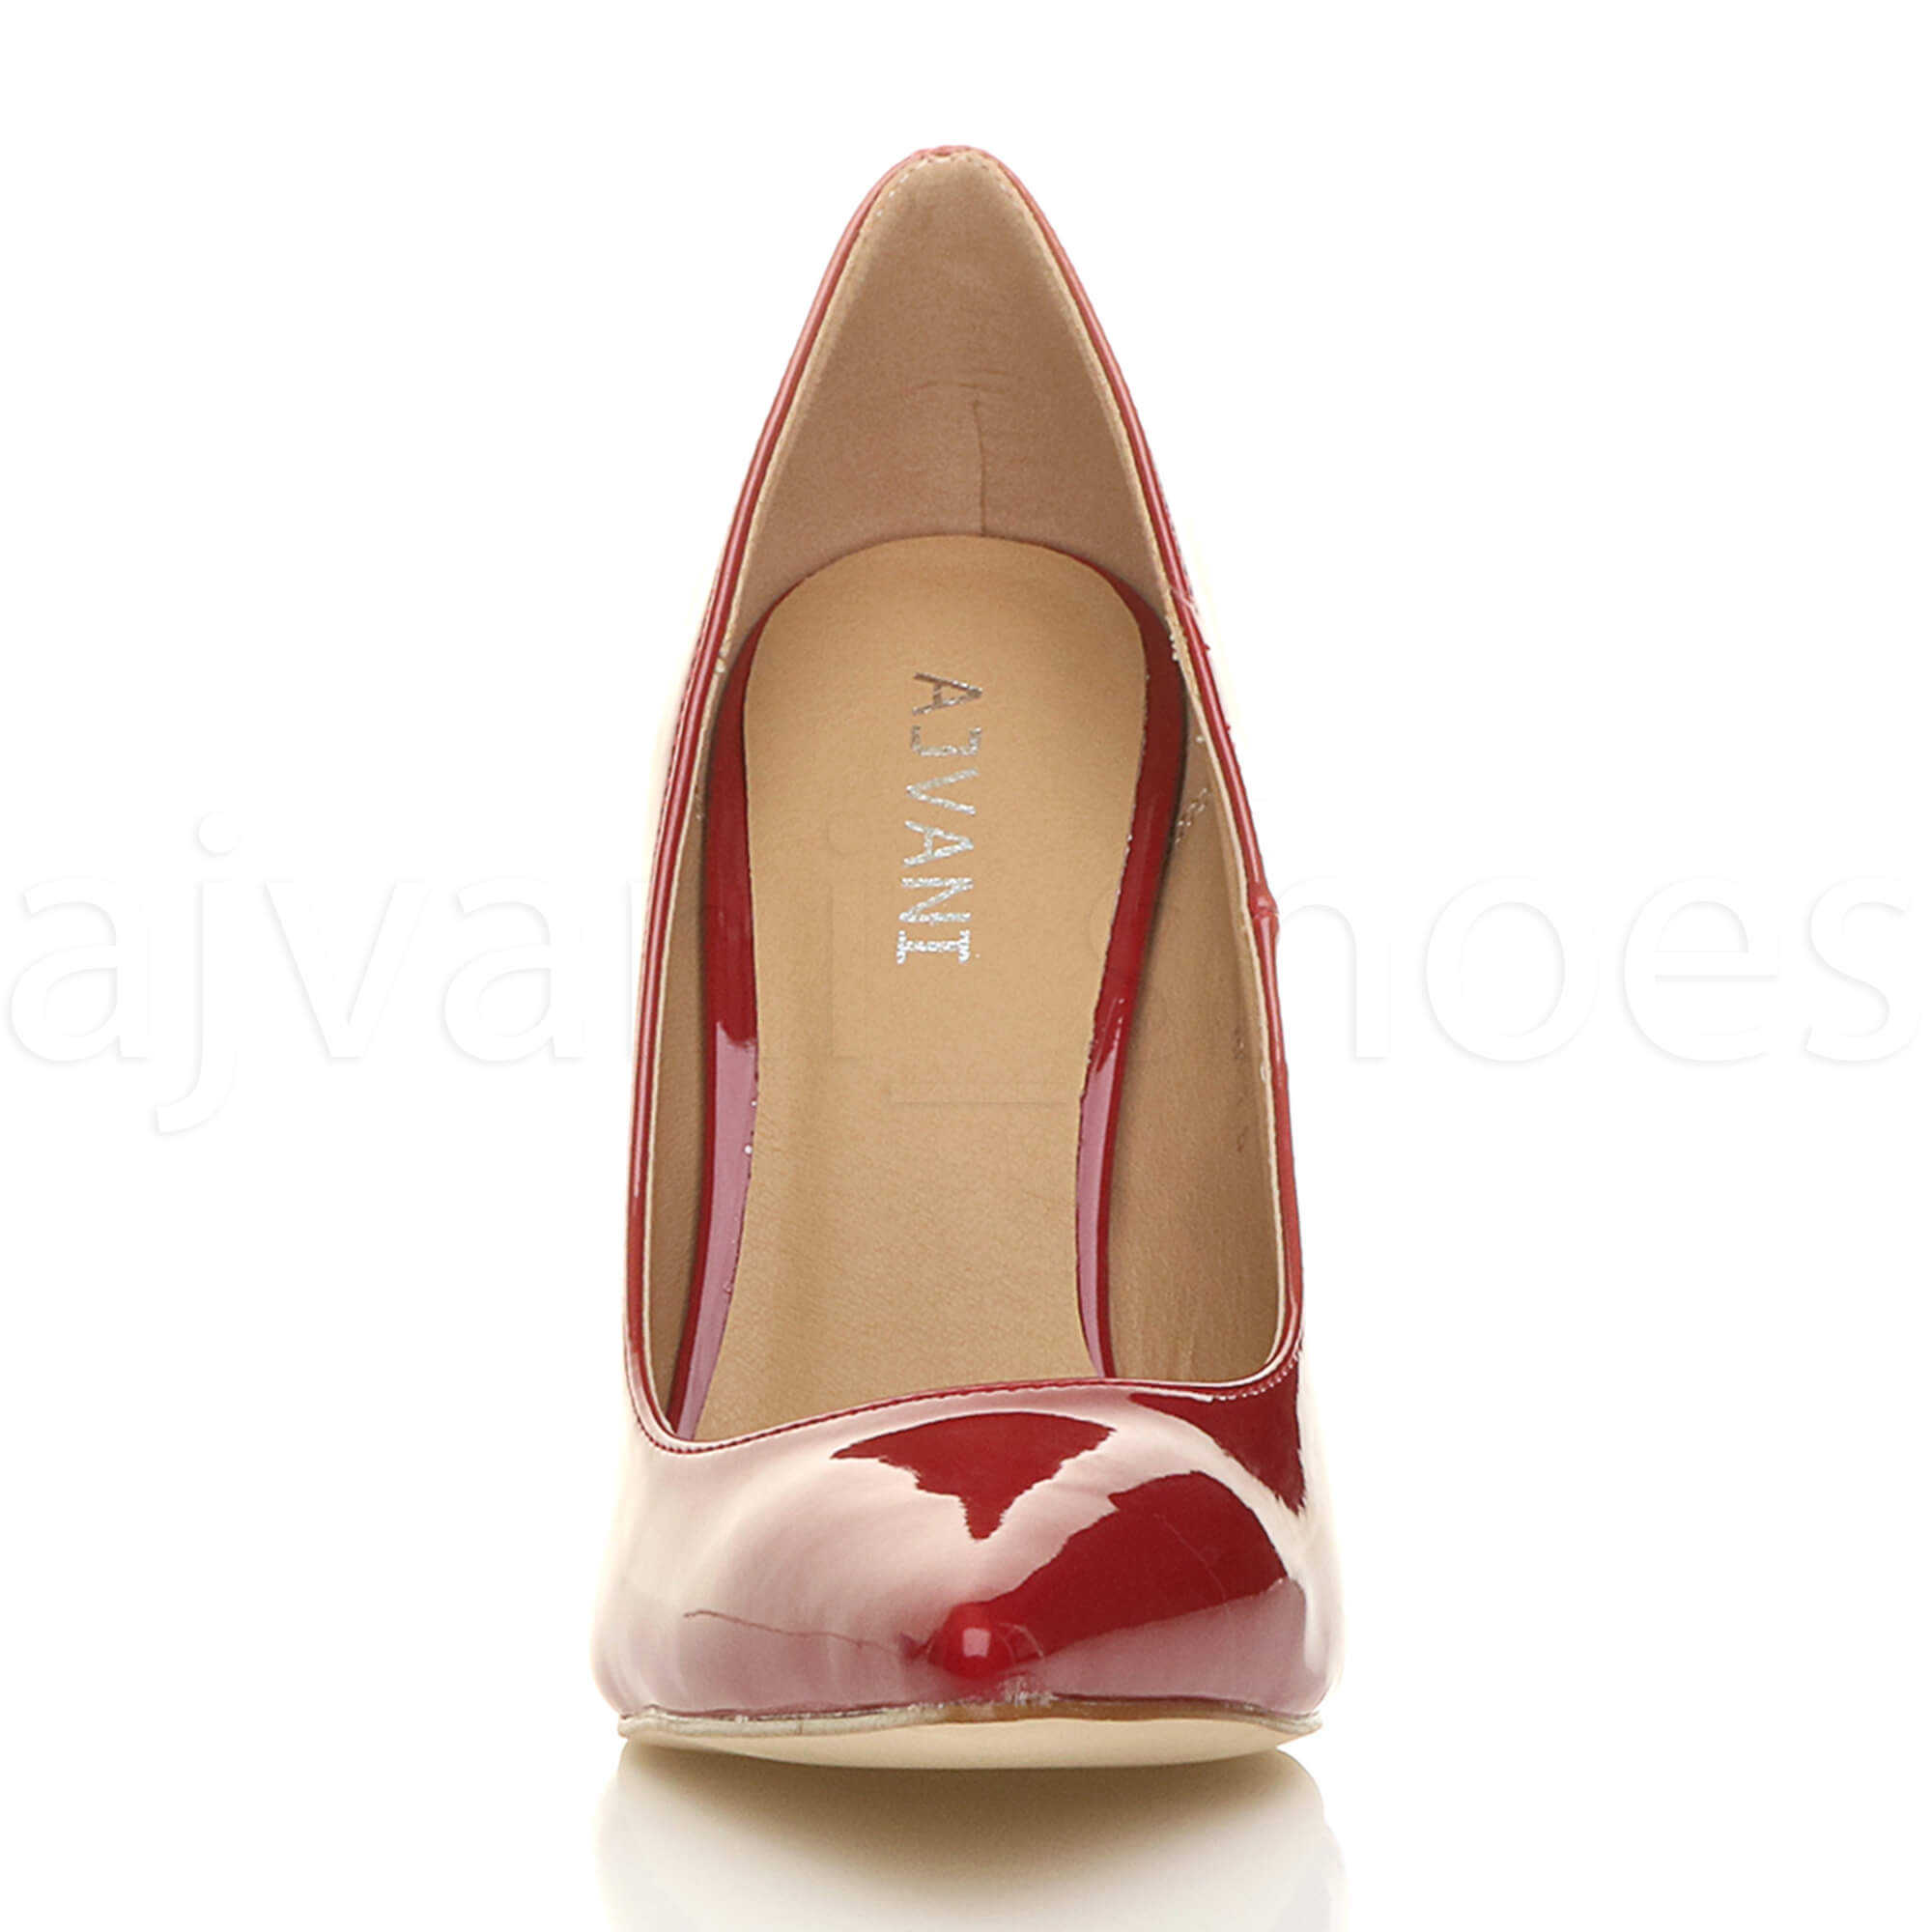 WOMENS-LADIES-HIGH-HEEL-POINTED-CONTRAST-COURT-SMART-PARTY-WORK-SHOES-PUMPS-SIZE